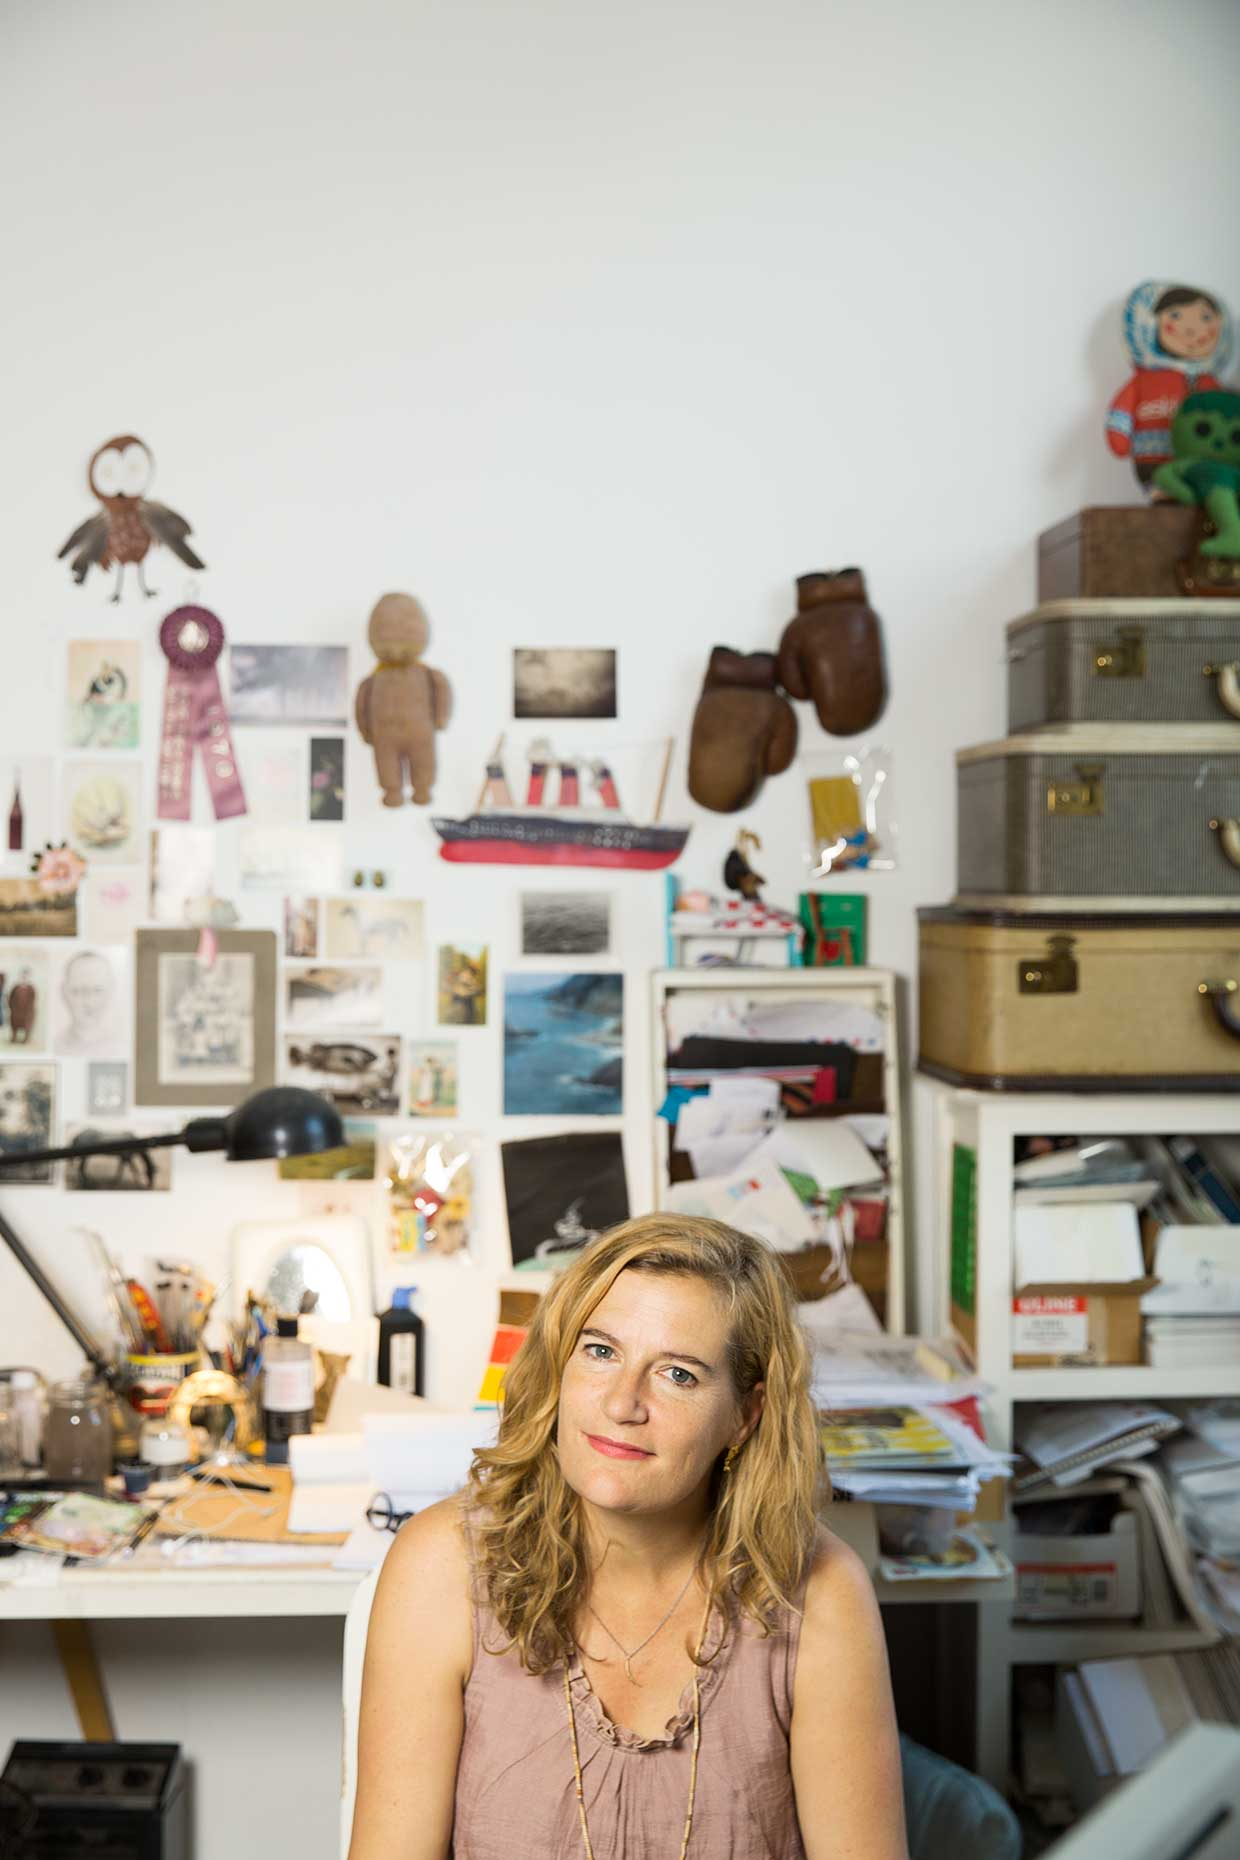 Sophie Blackall, Illustrator and Author, Brooklyn, NY, Editorial photography by Kevin Brusie.